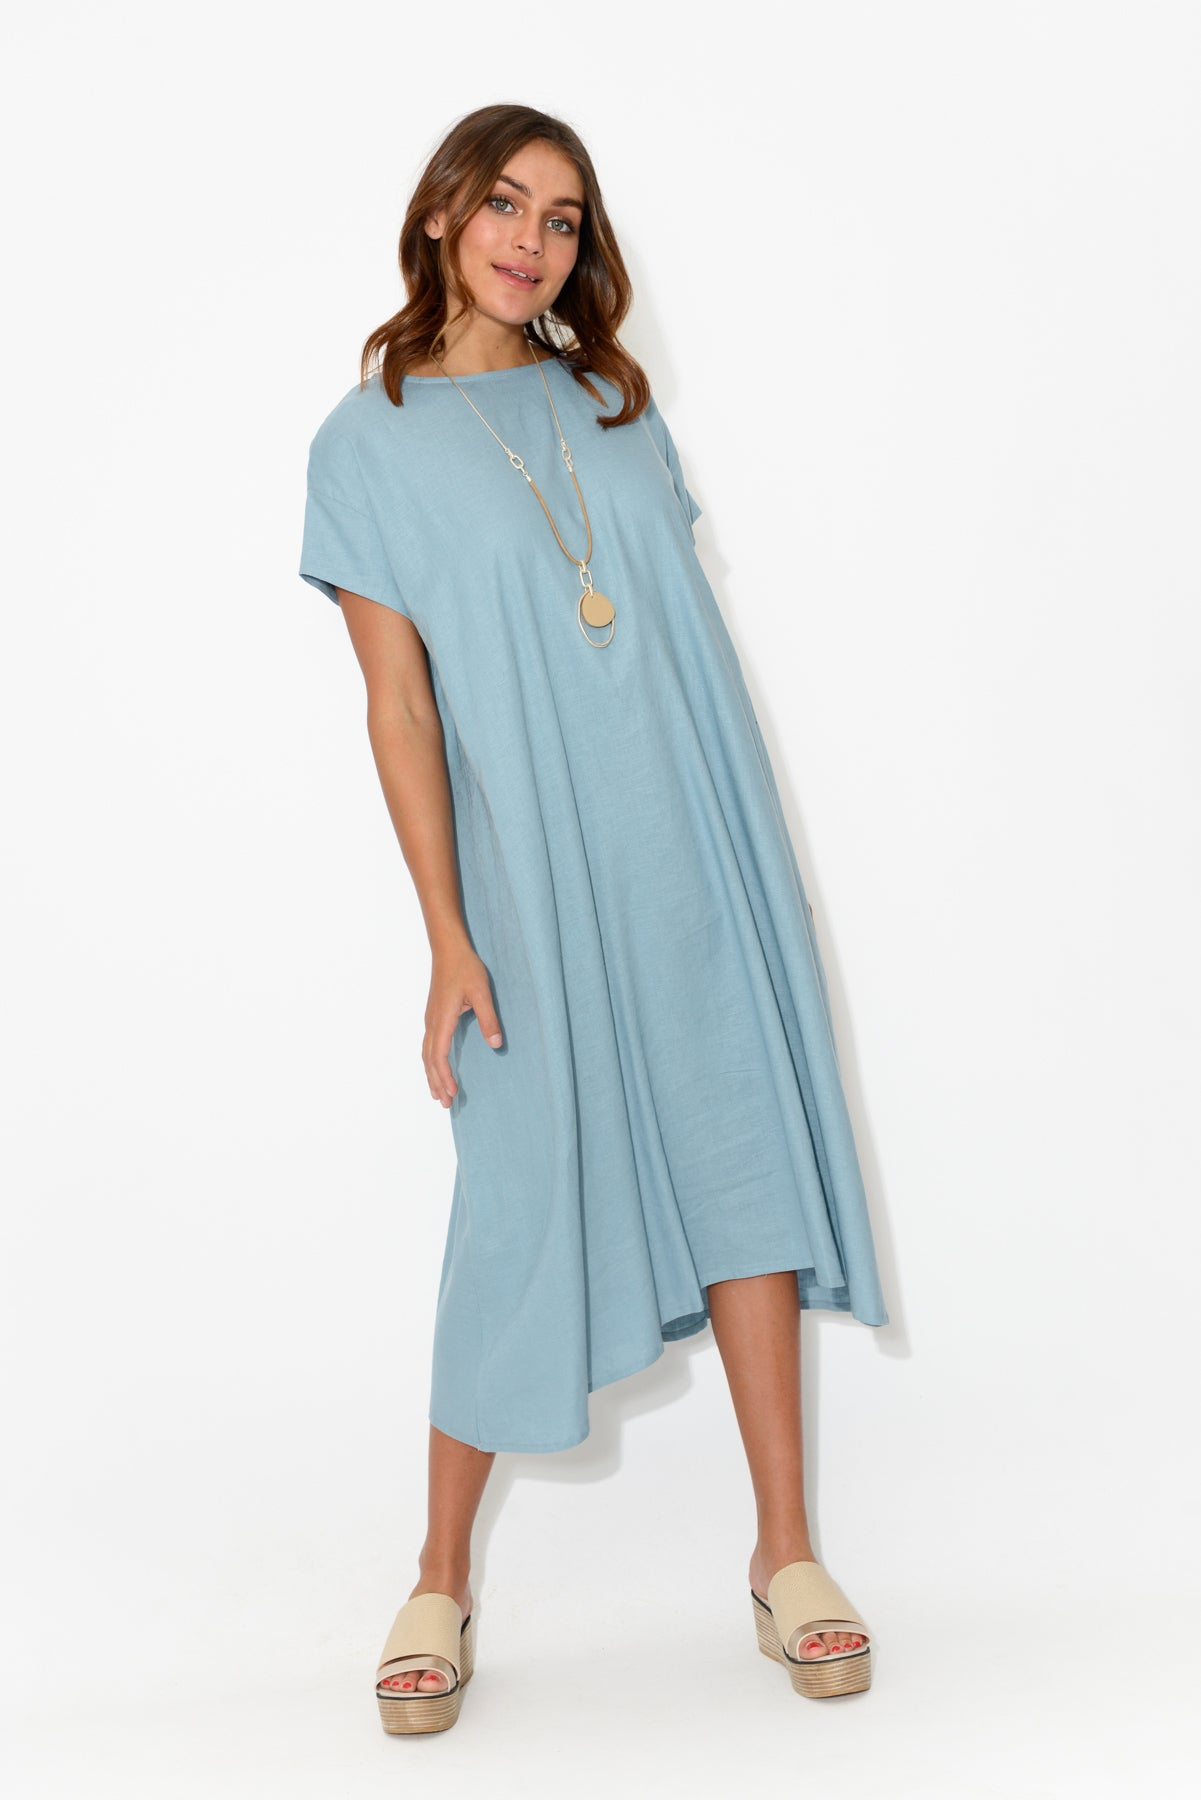 Nova Blue Gather Back Dress - Blue Bungalow